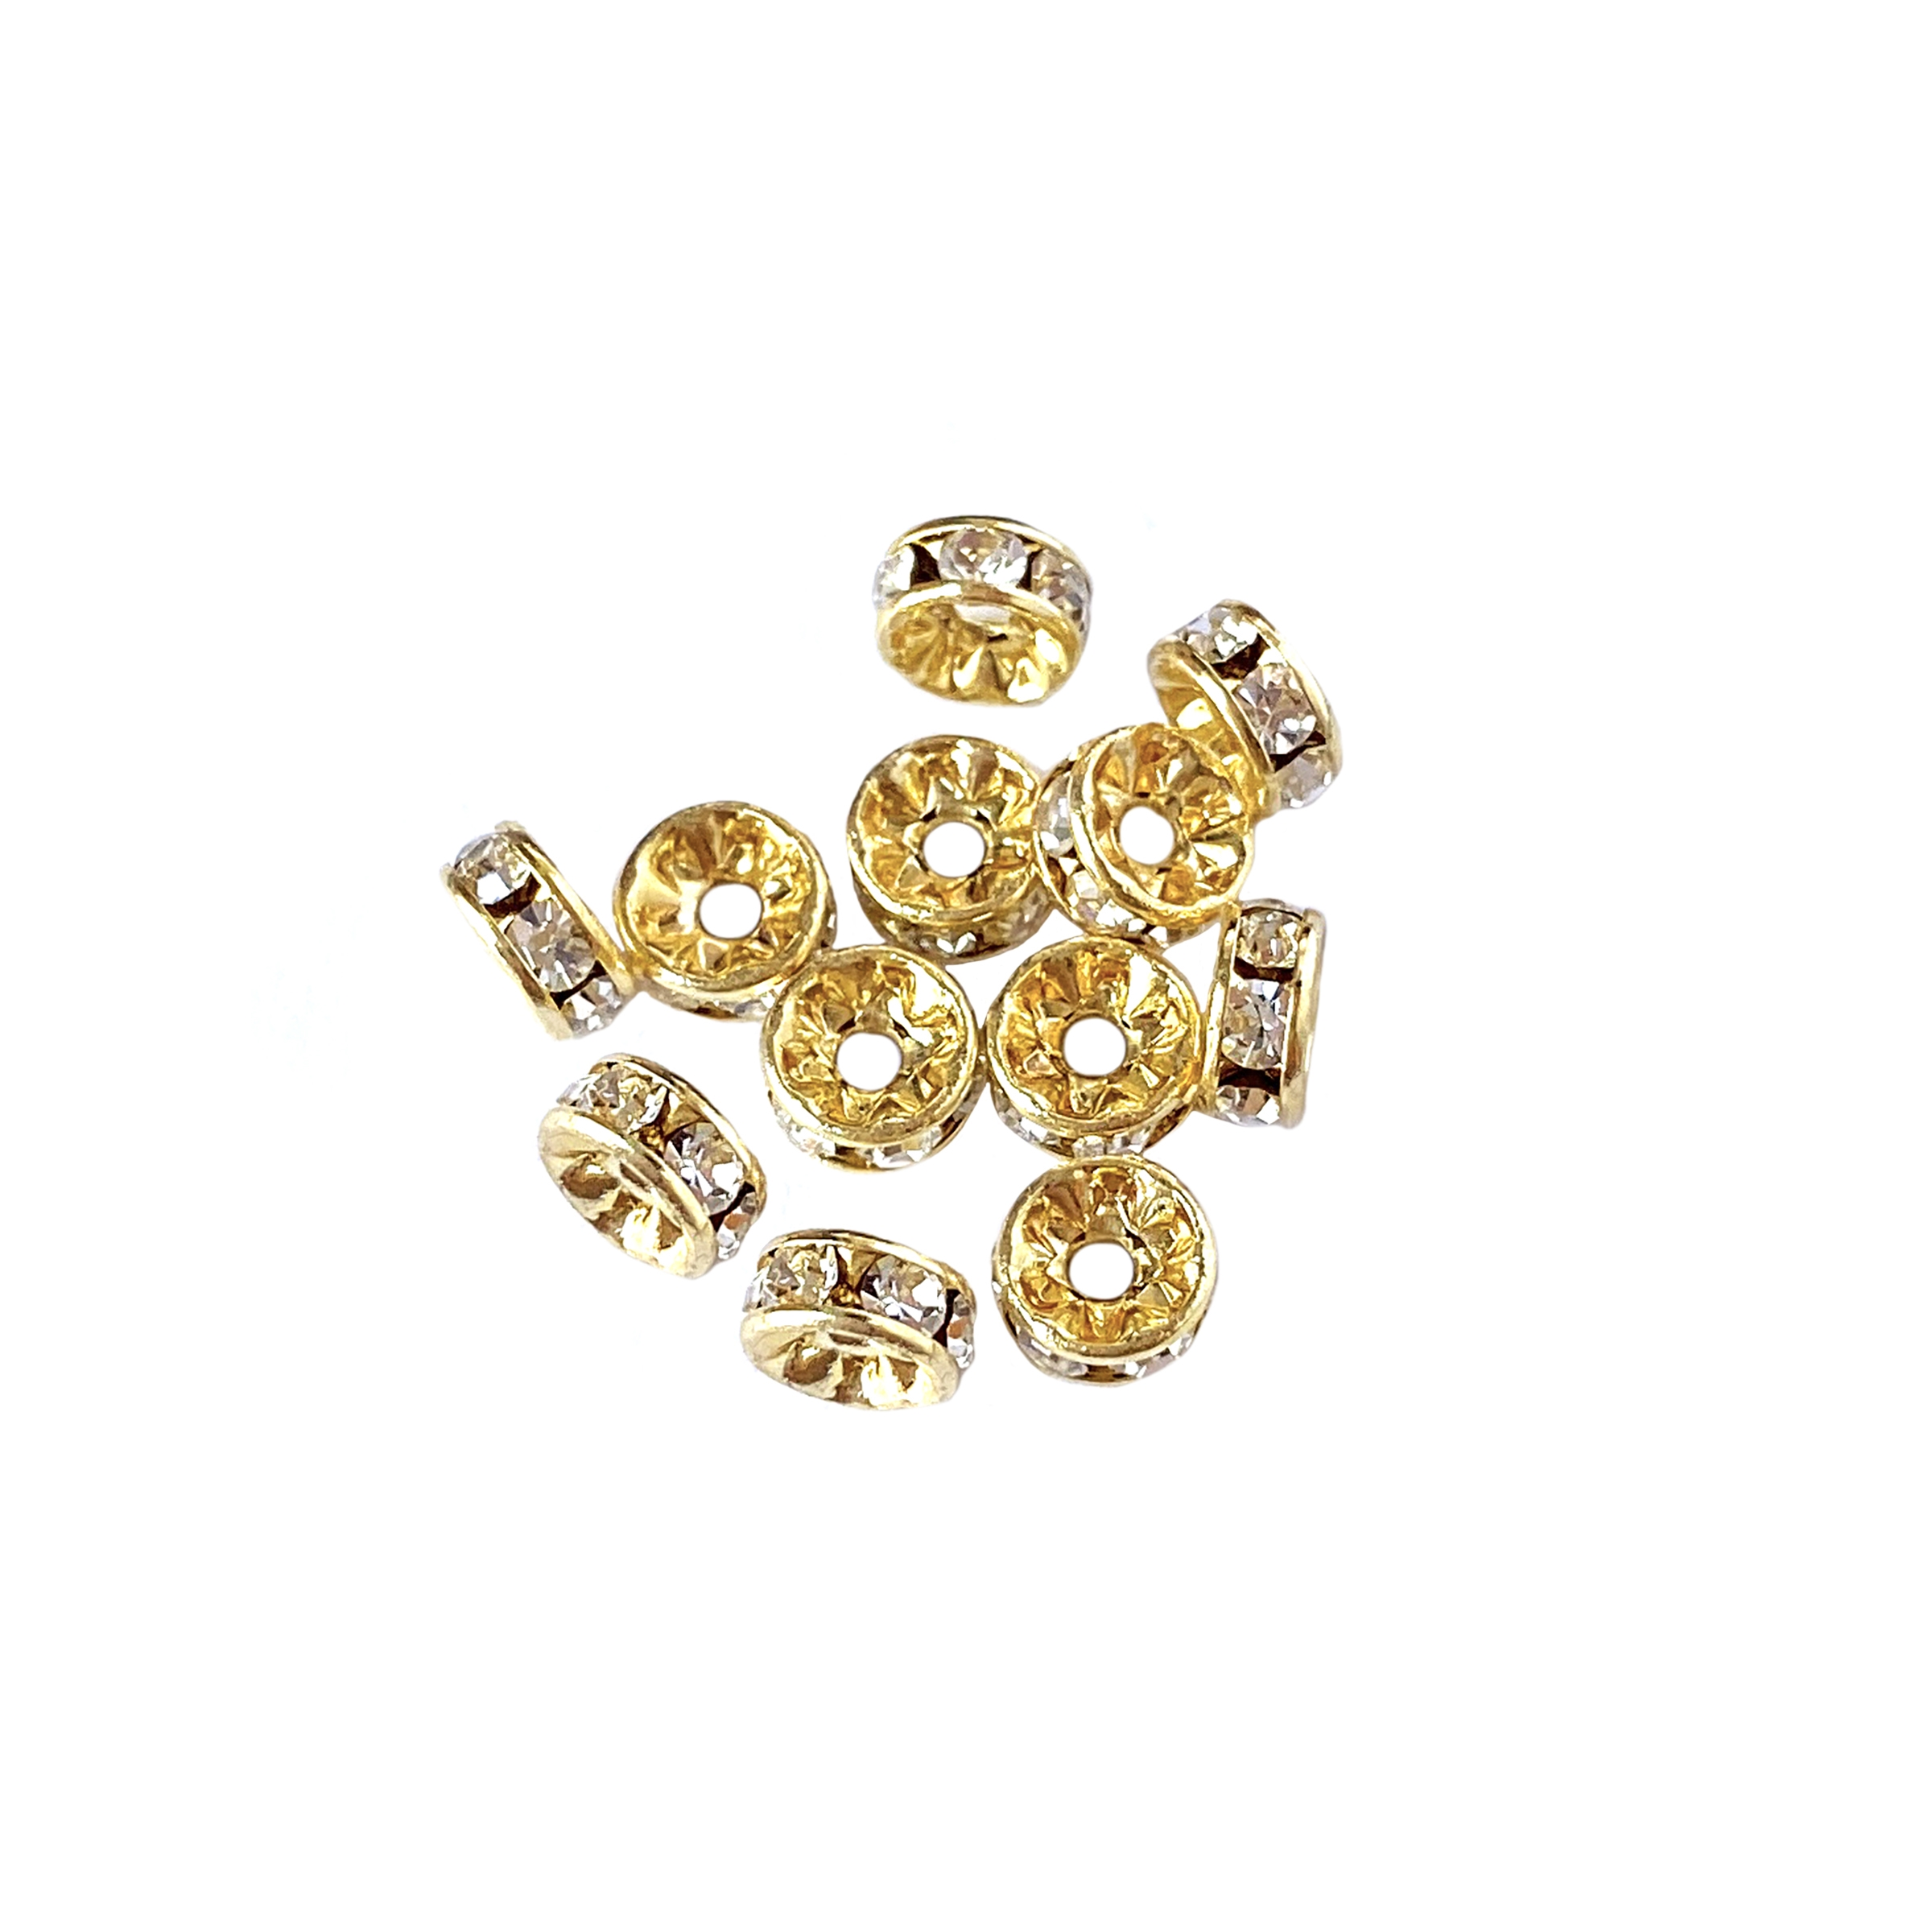 rhondelles, crystal beads, jewelry making, 5mm,07488, jewelry supplies, beading supplies, gold plate rhondelles, jewelry making supplies,